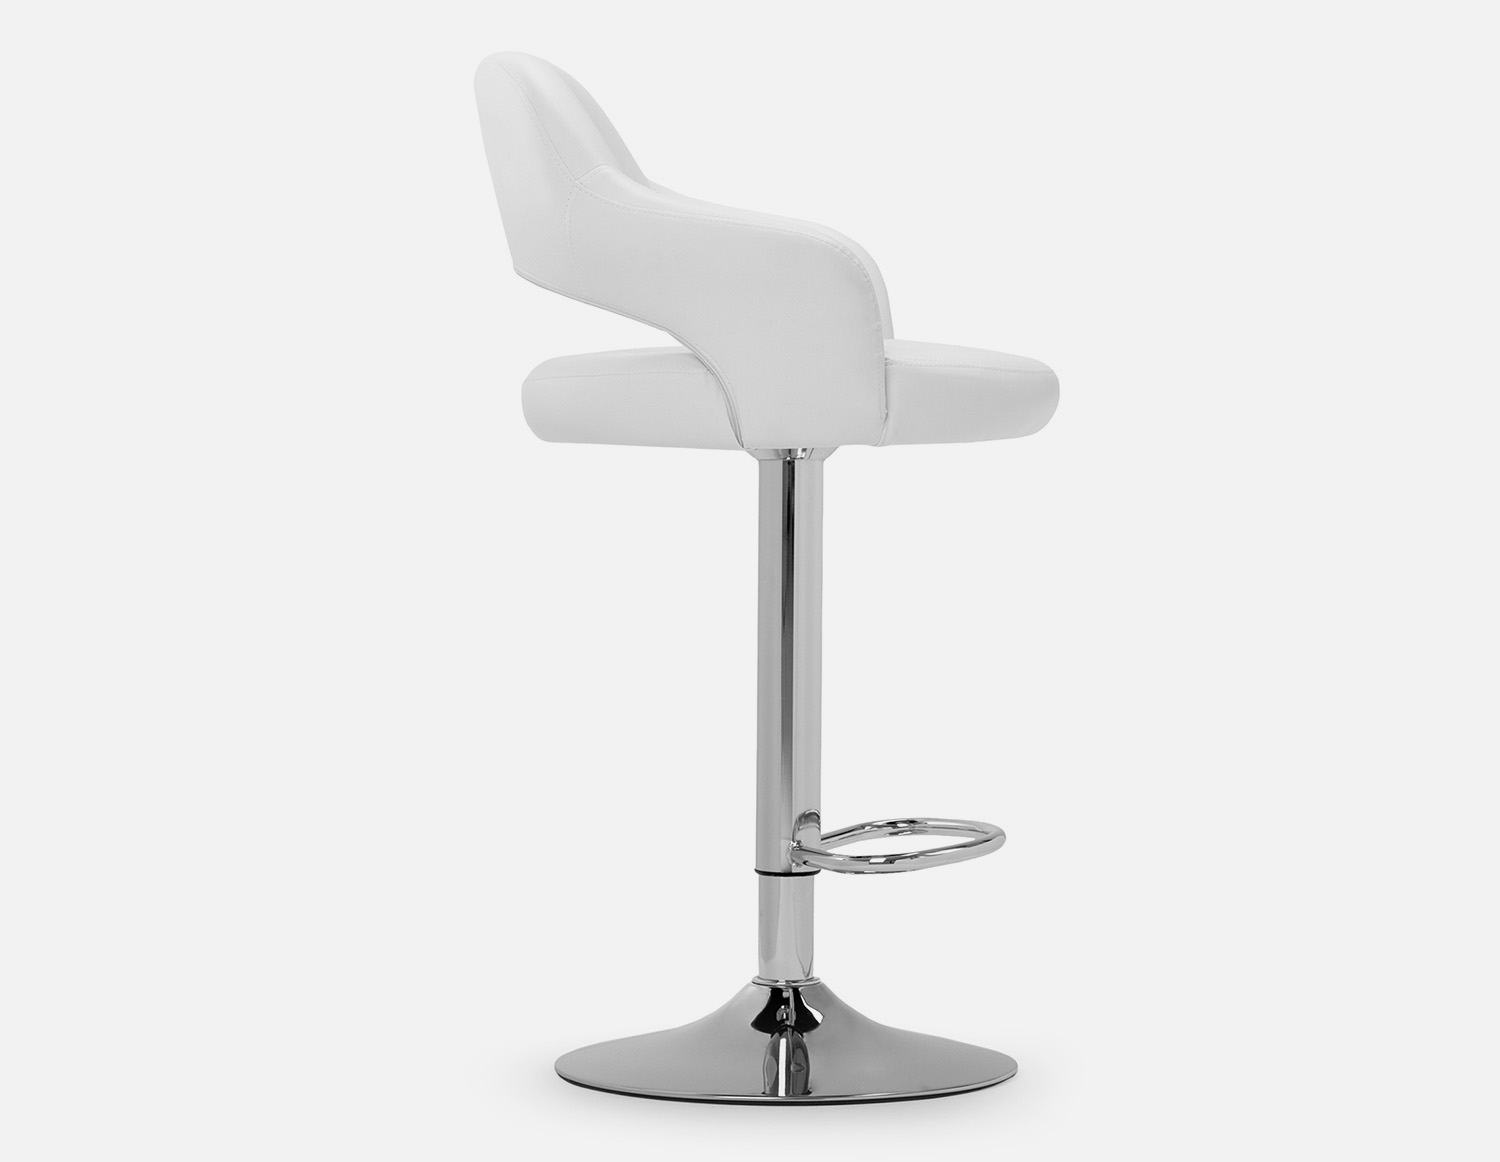 Astonishing Riko White Adjustable Stool 87Cm To 109Cm Products In 2019 Caraccident5 Cool Chair Designs And Ideas Caraccident5Info